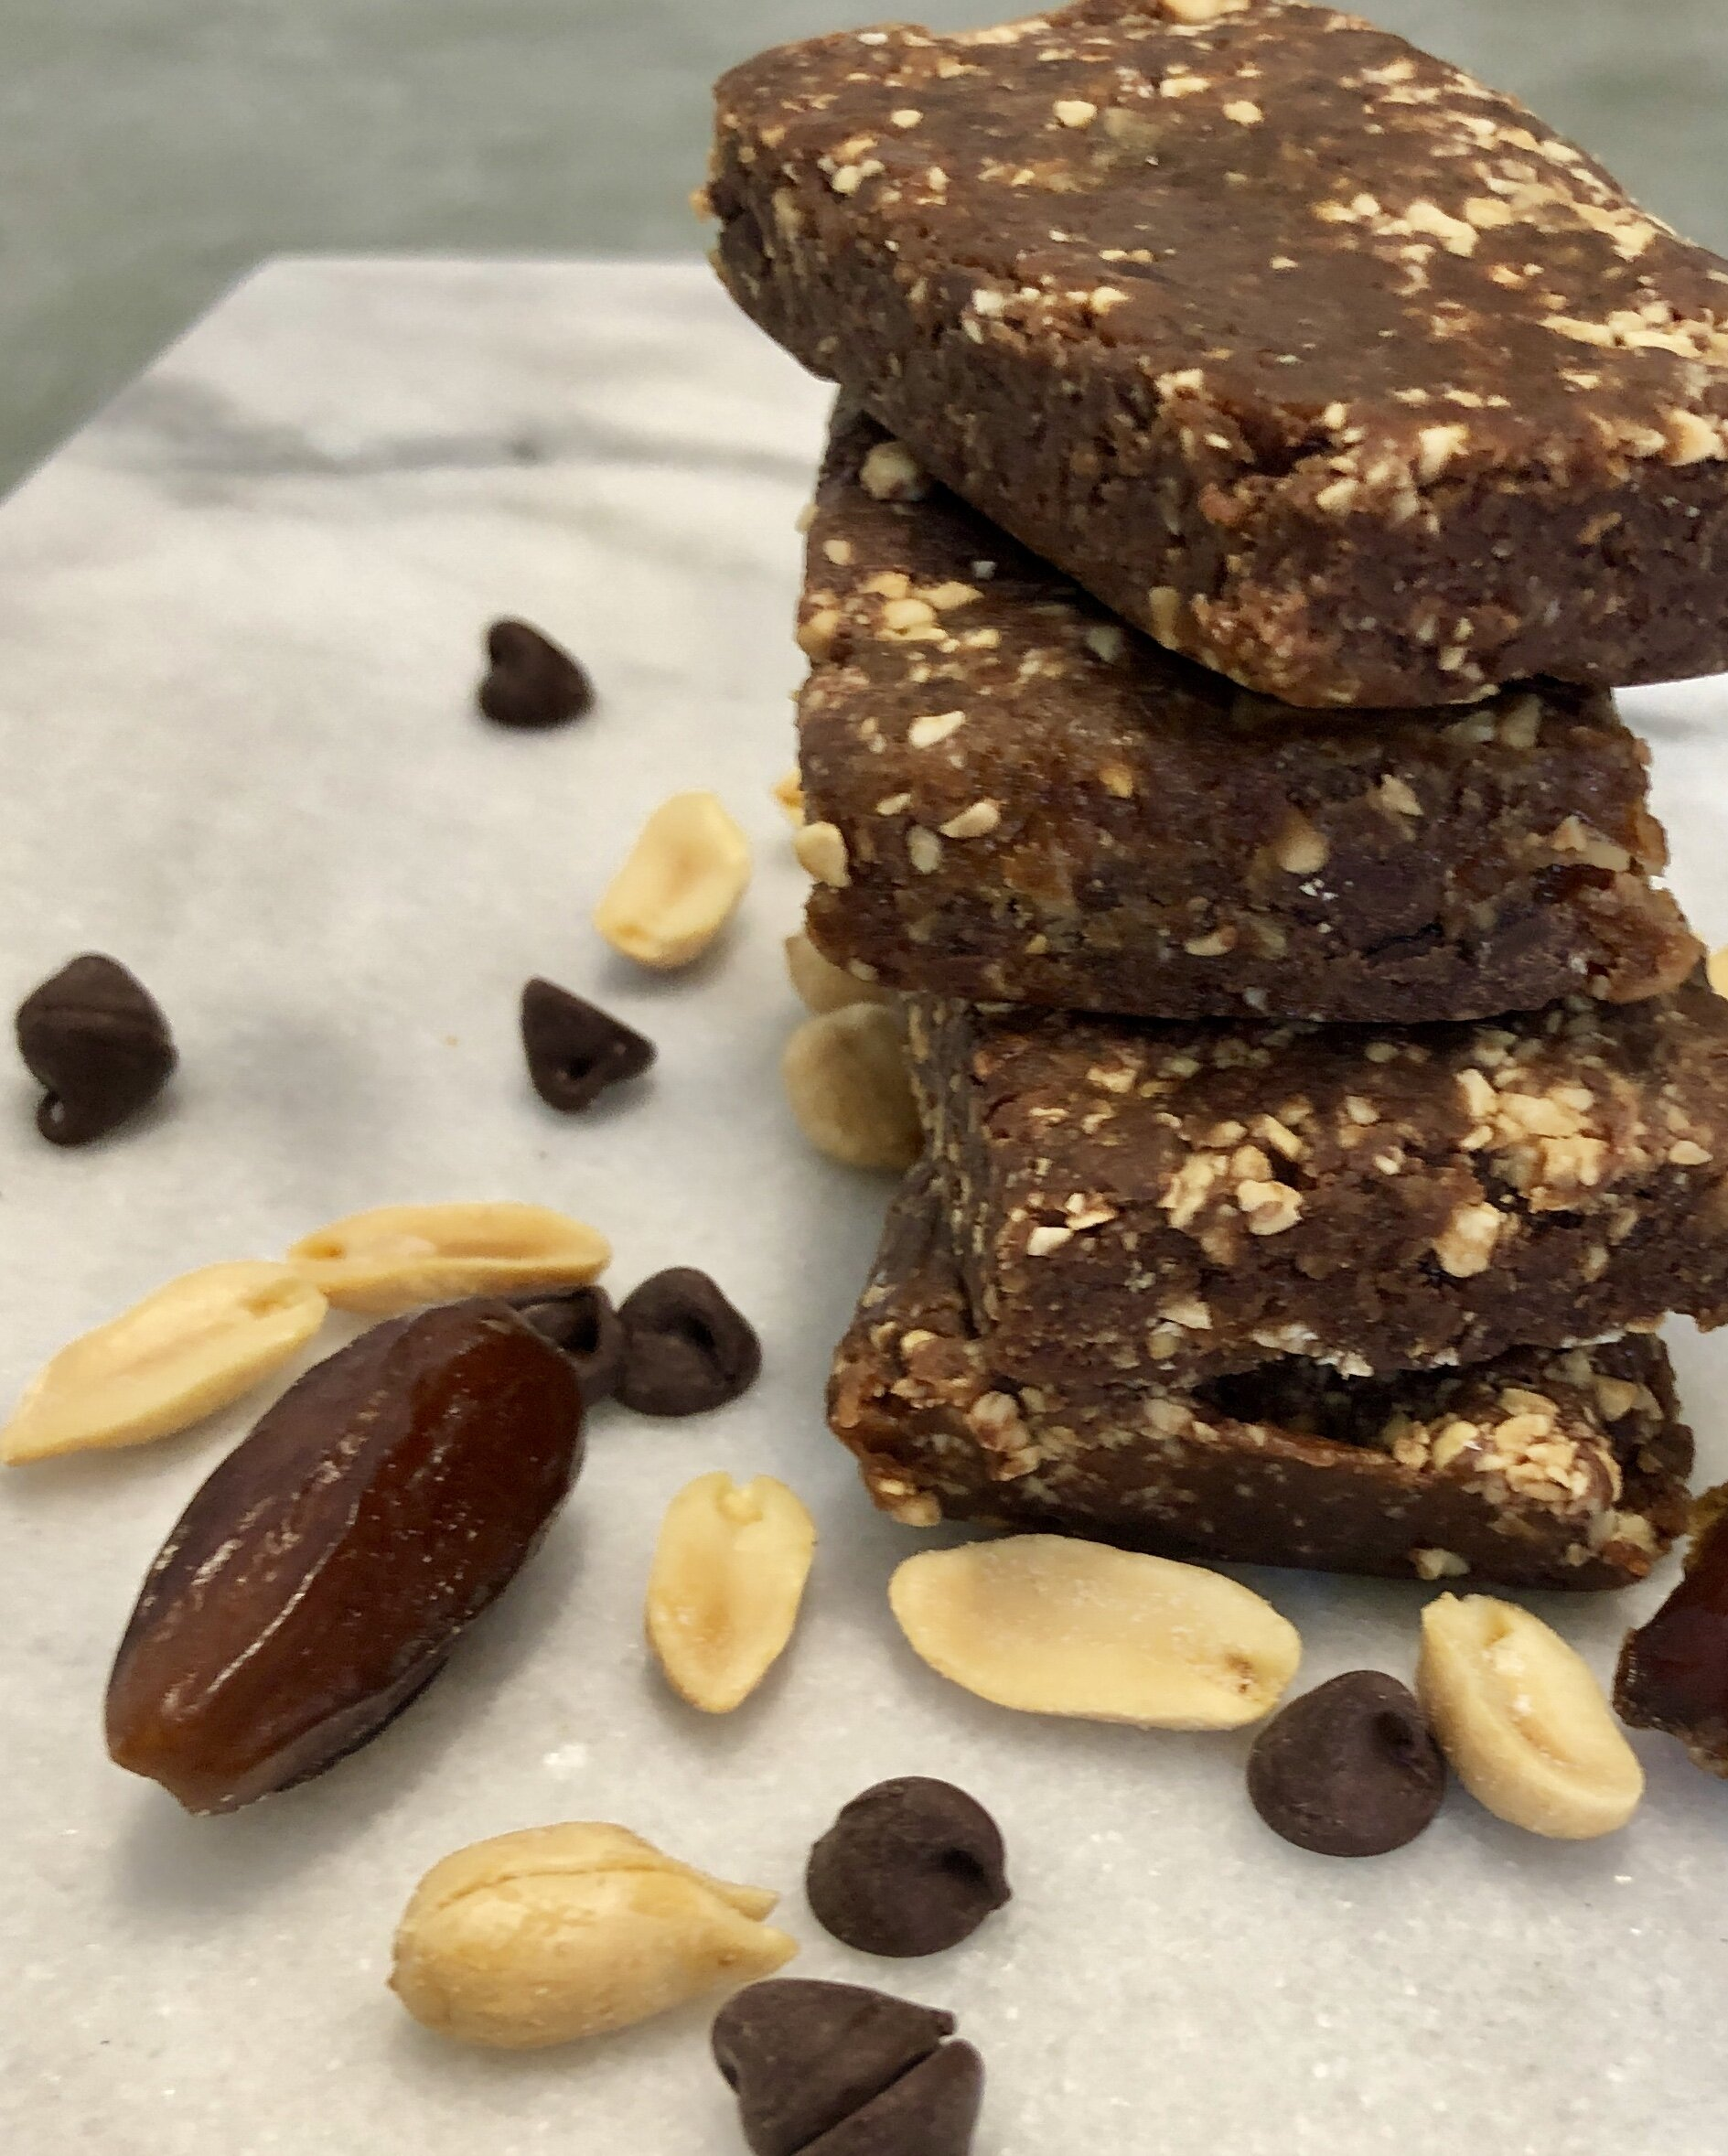 Homemade Chocolate Peanut Energy Bars - 4 simple ingredients and 10 minutes is all you need to replicate this popular LaraBar flavor.